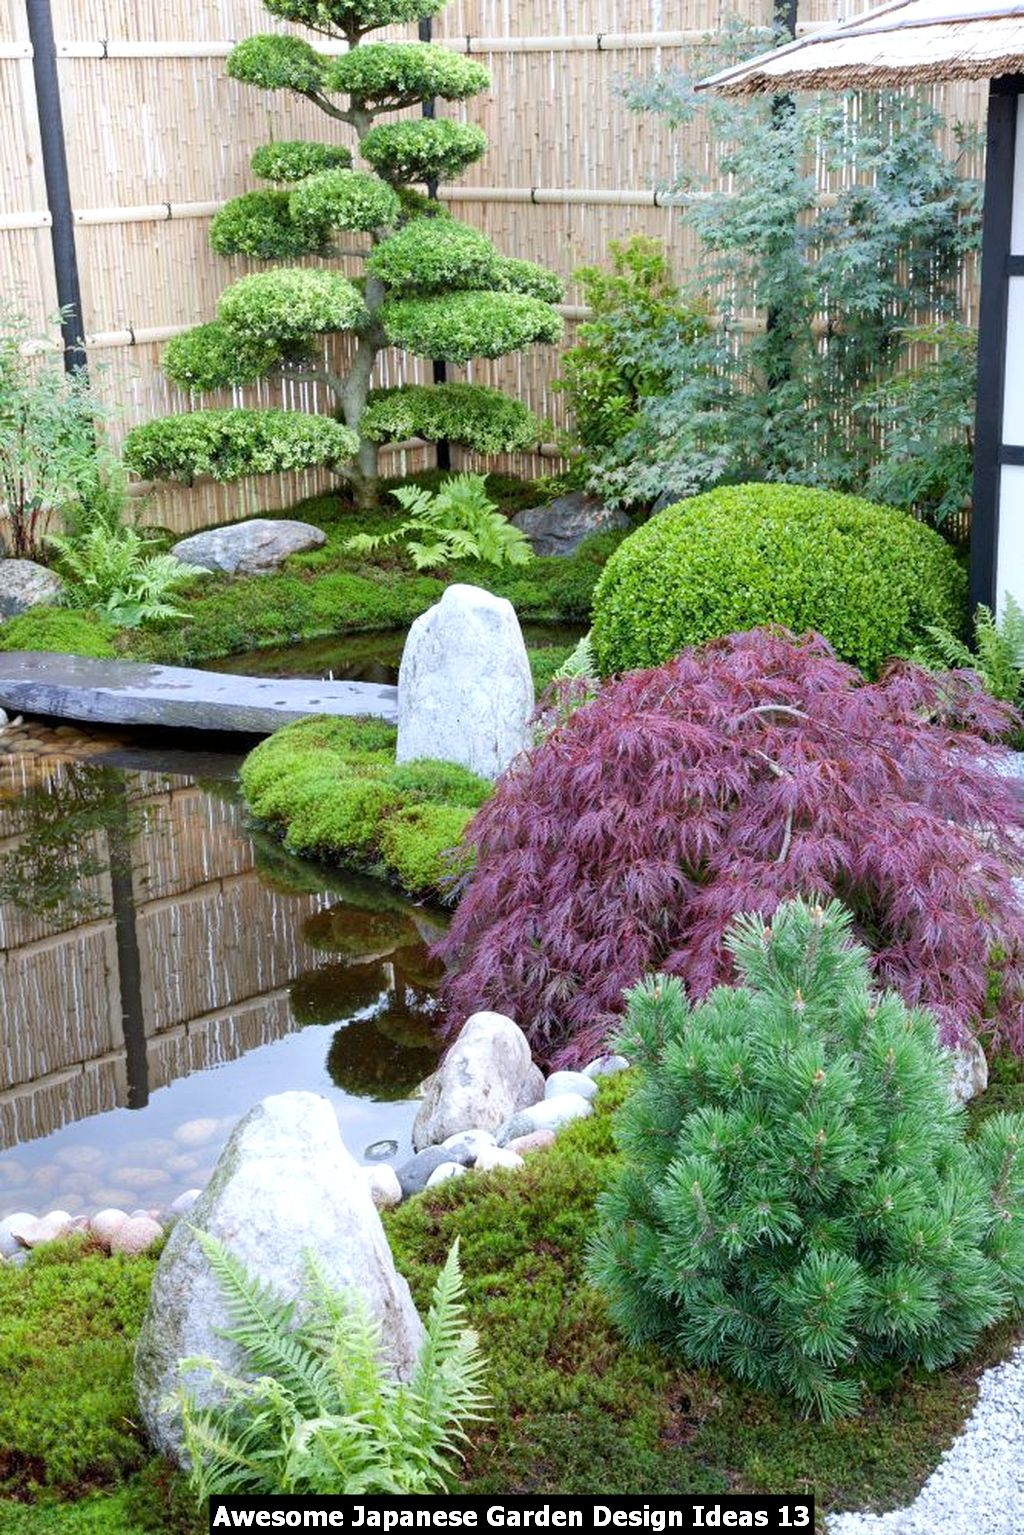 Awesome Japanese Garden Design Ideas 13